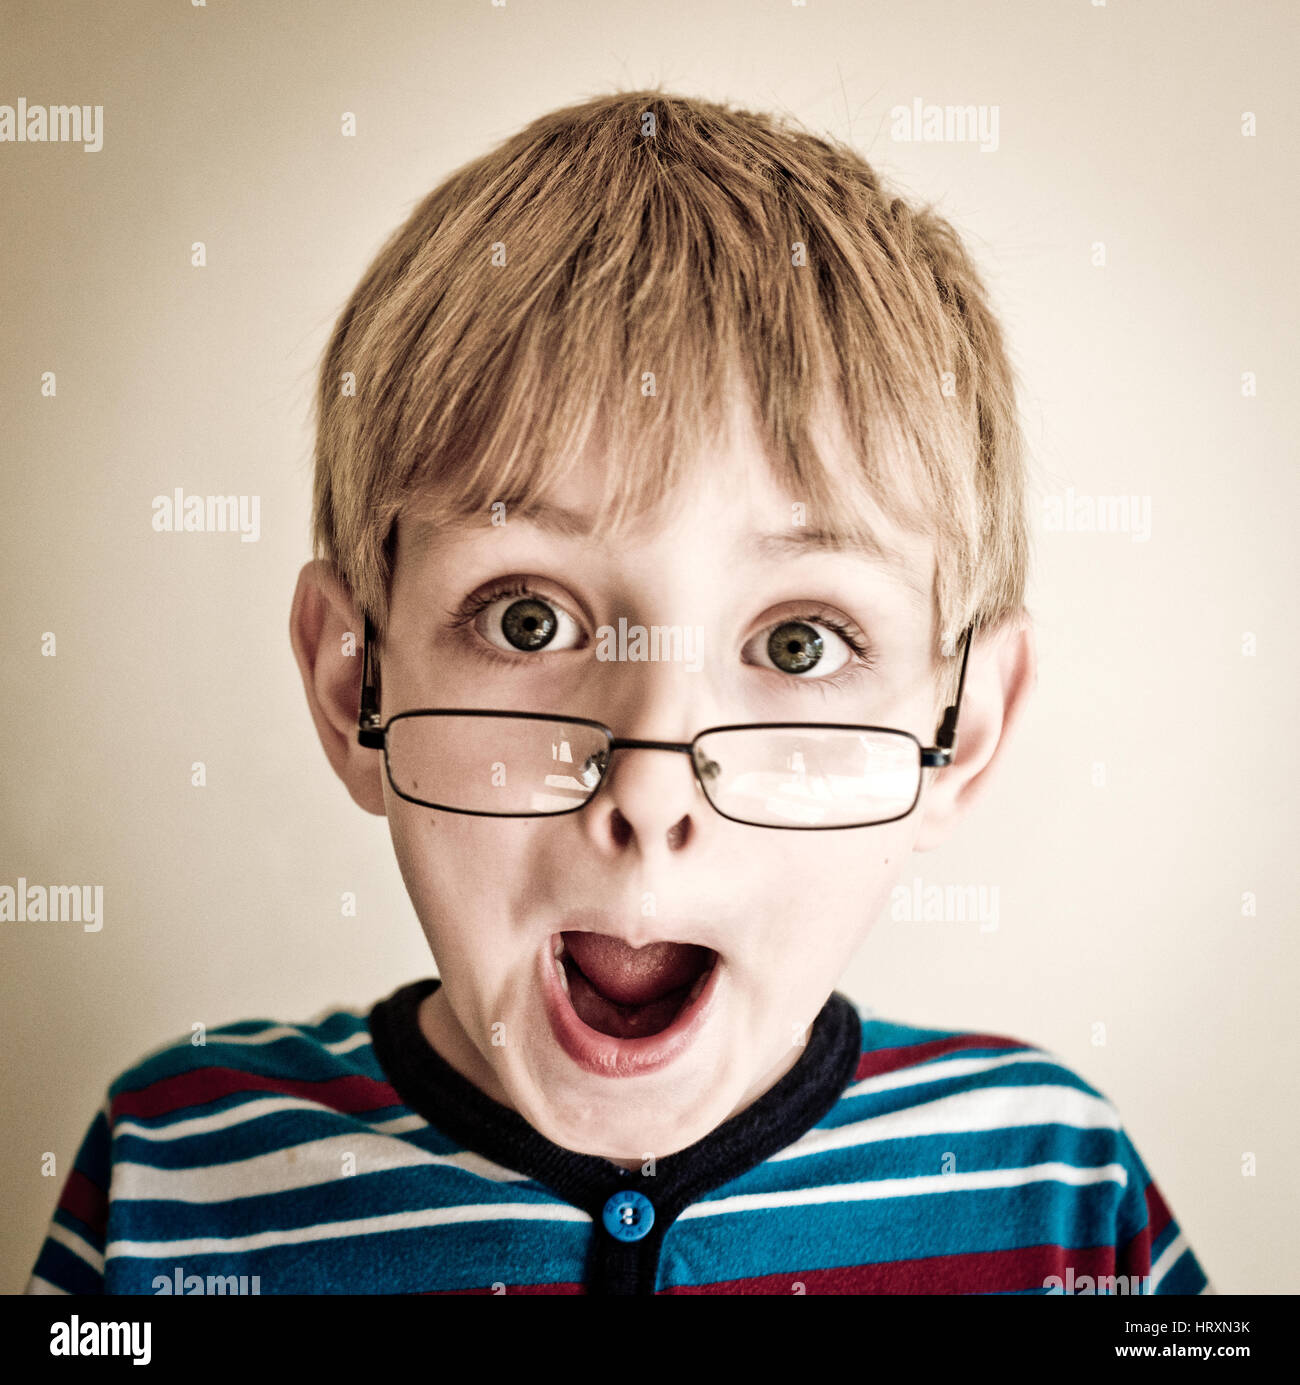 A young blonde haired boy with glasses with an expression of surprise on his face. - Stock Image